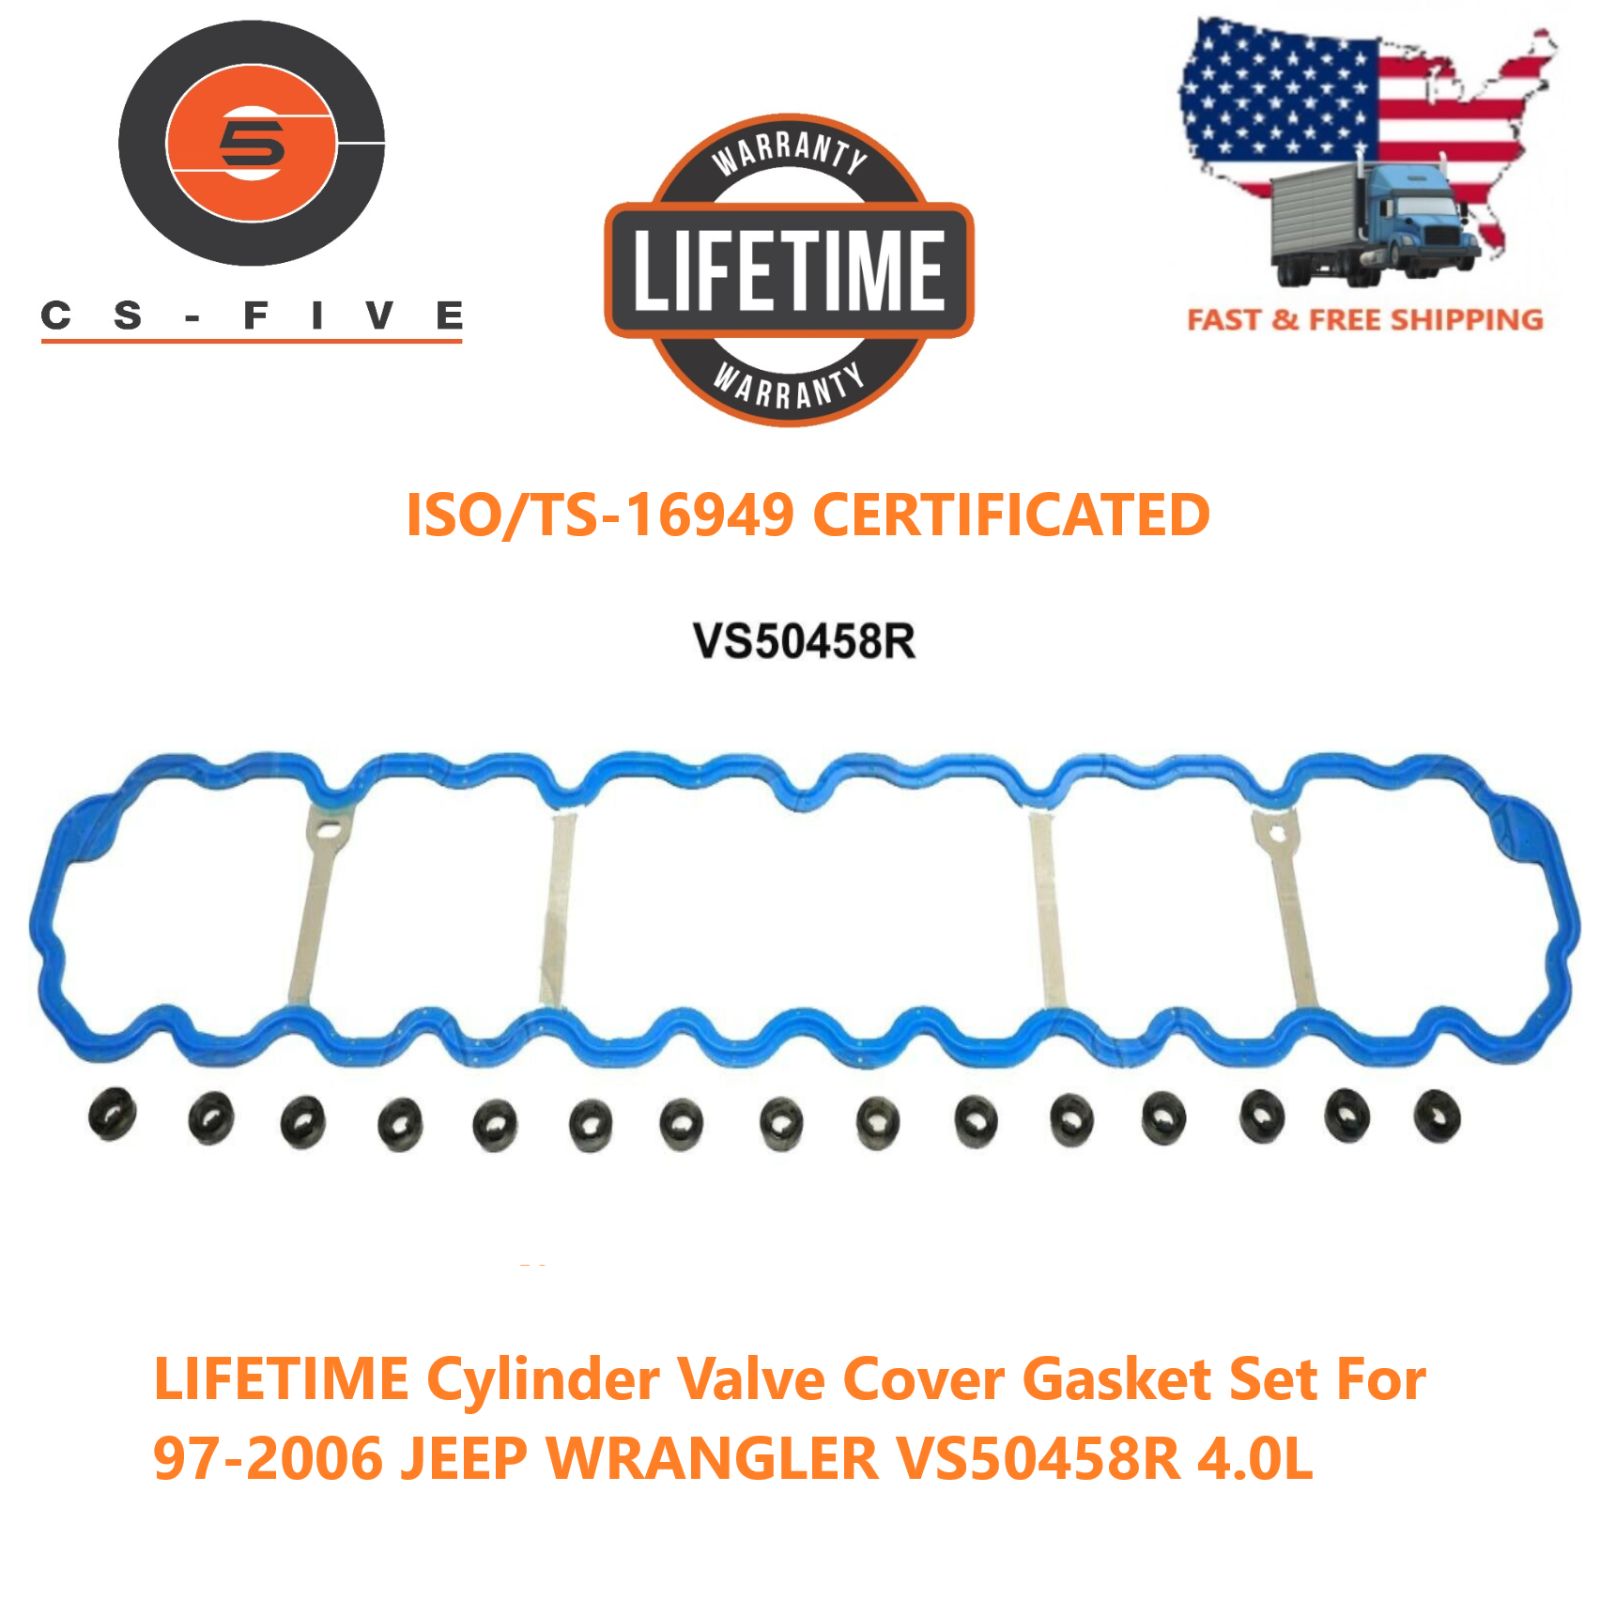 LIFETIME Cylinder Valve Cover Gasket Set For 97-2006 JEEP WRANGLER VS50458R 4.0L VS50458R VS50458R